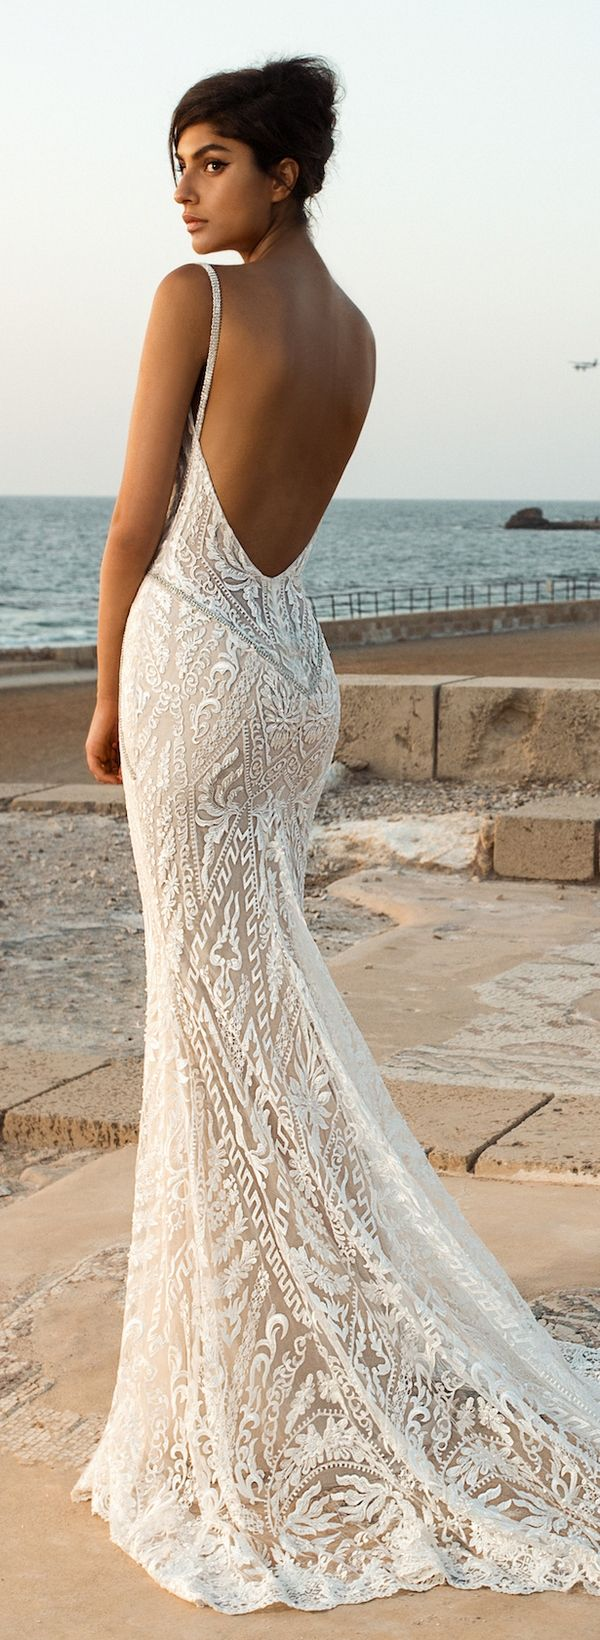 Best 20 Colored wedding dresses ideas on Pinterest Colored